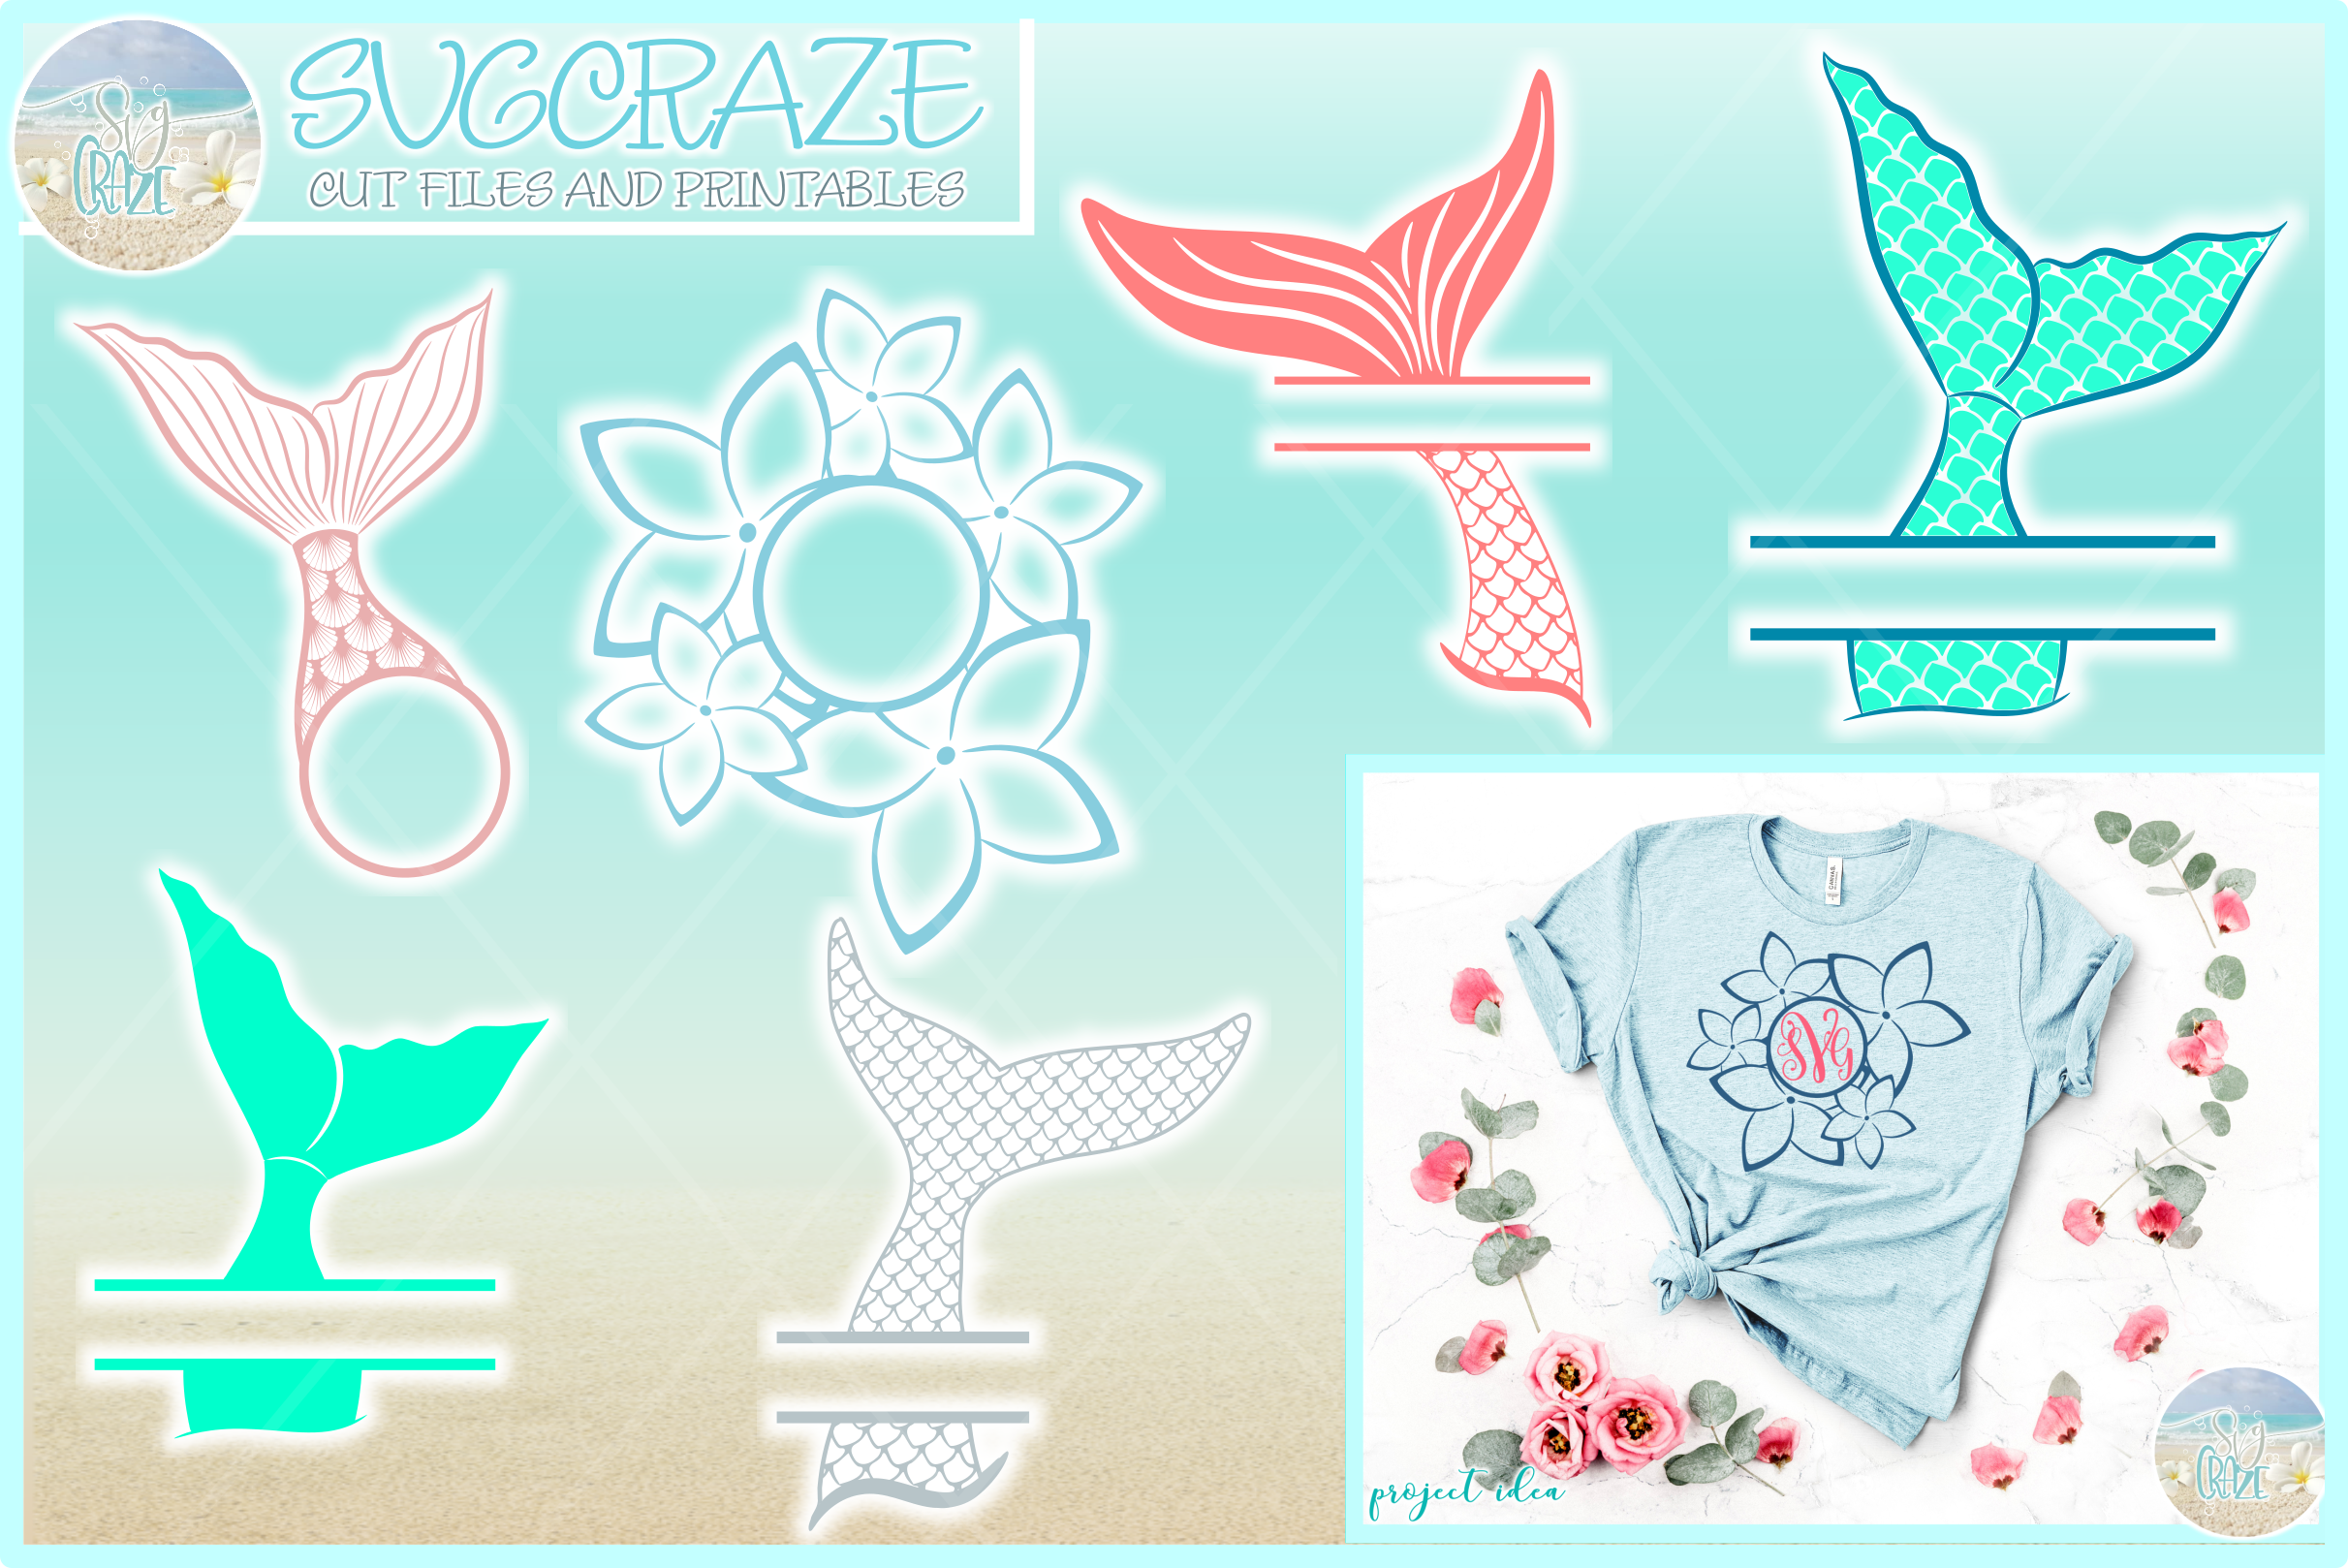 Mermaid Tail Monogram Svg Dxf Eps Png Pdf Files For Cricut example image 1